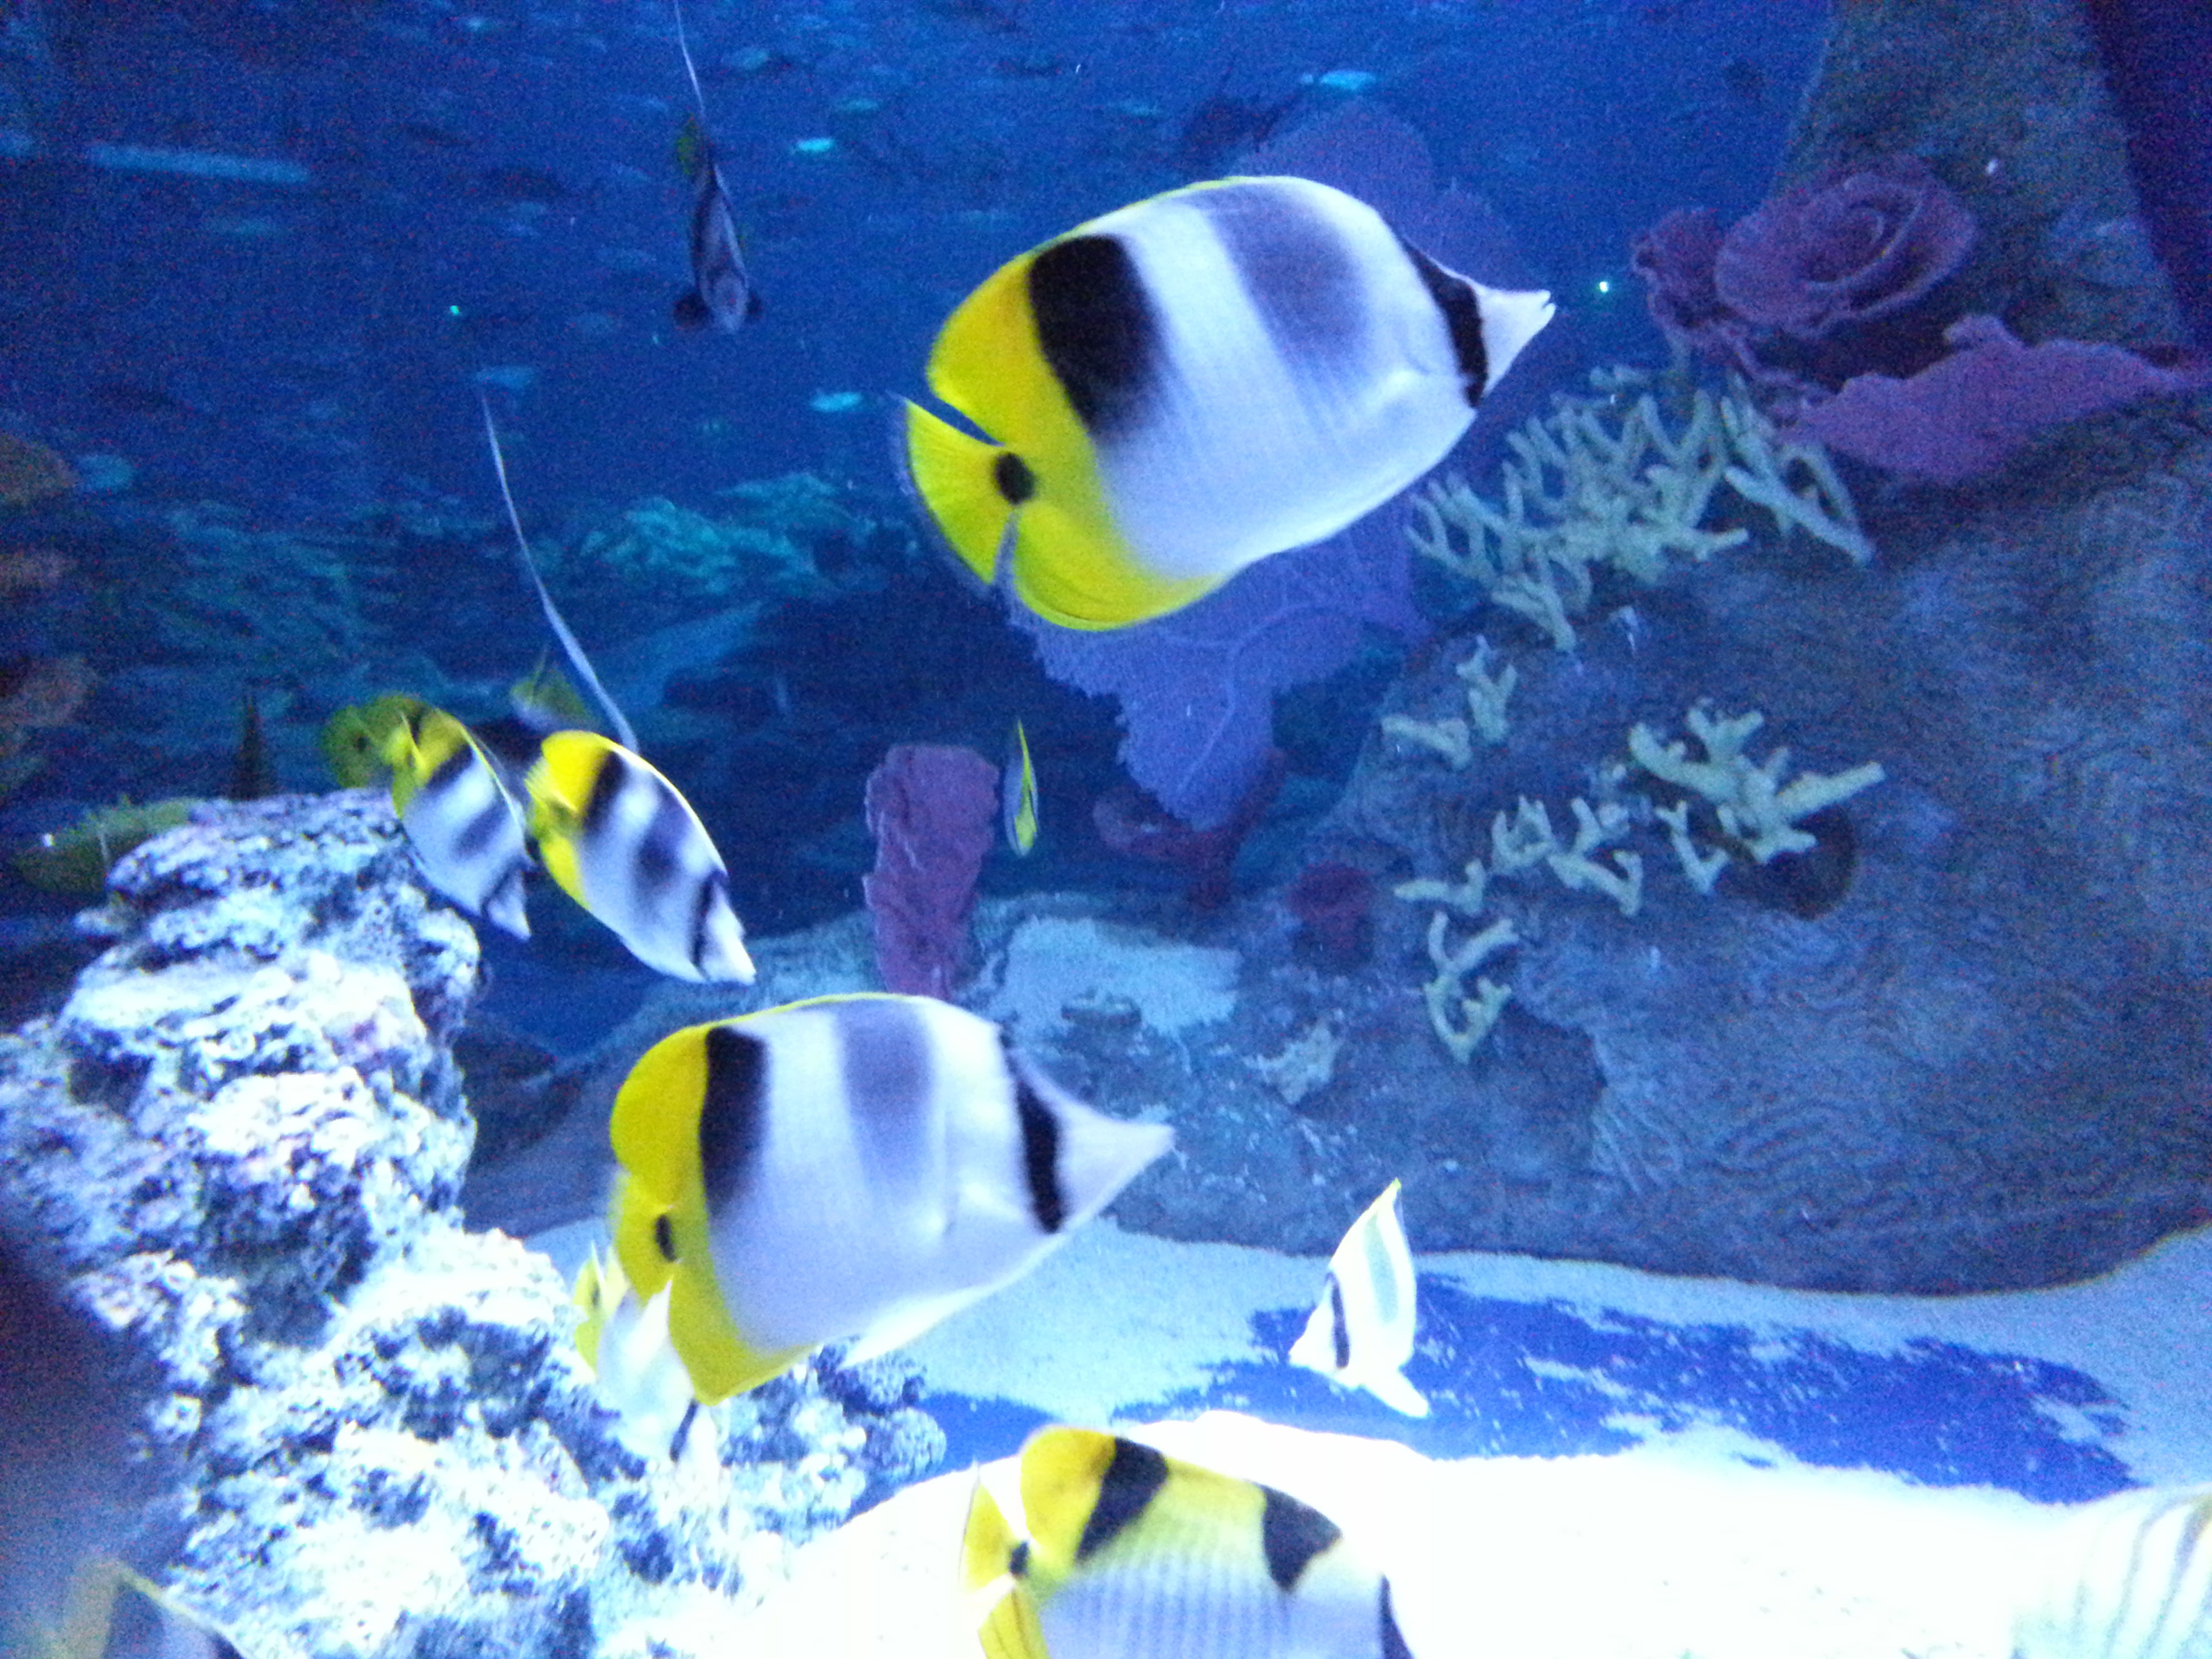 underwater, animal themes, swimming, animals in the wild, fish, sea life, wildlife, water, undersea, blue, aquarium, one animal, sea, nature, school of fish, beauty in nature, yellow, high angle view, two animals